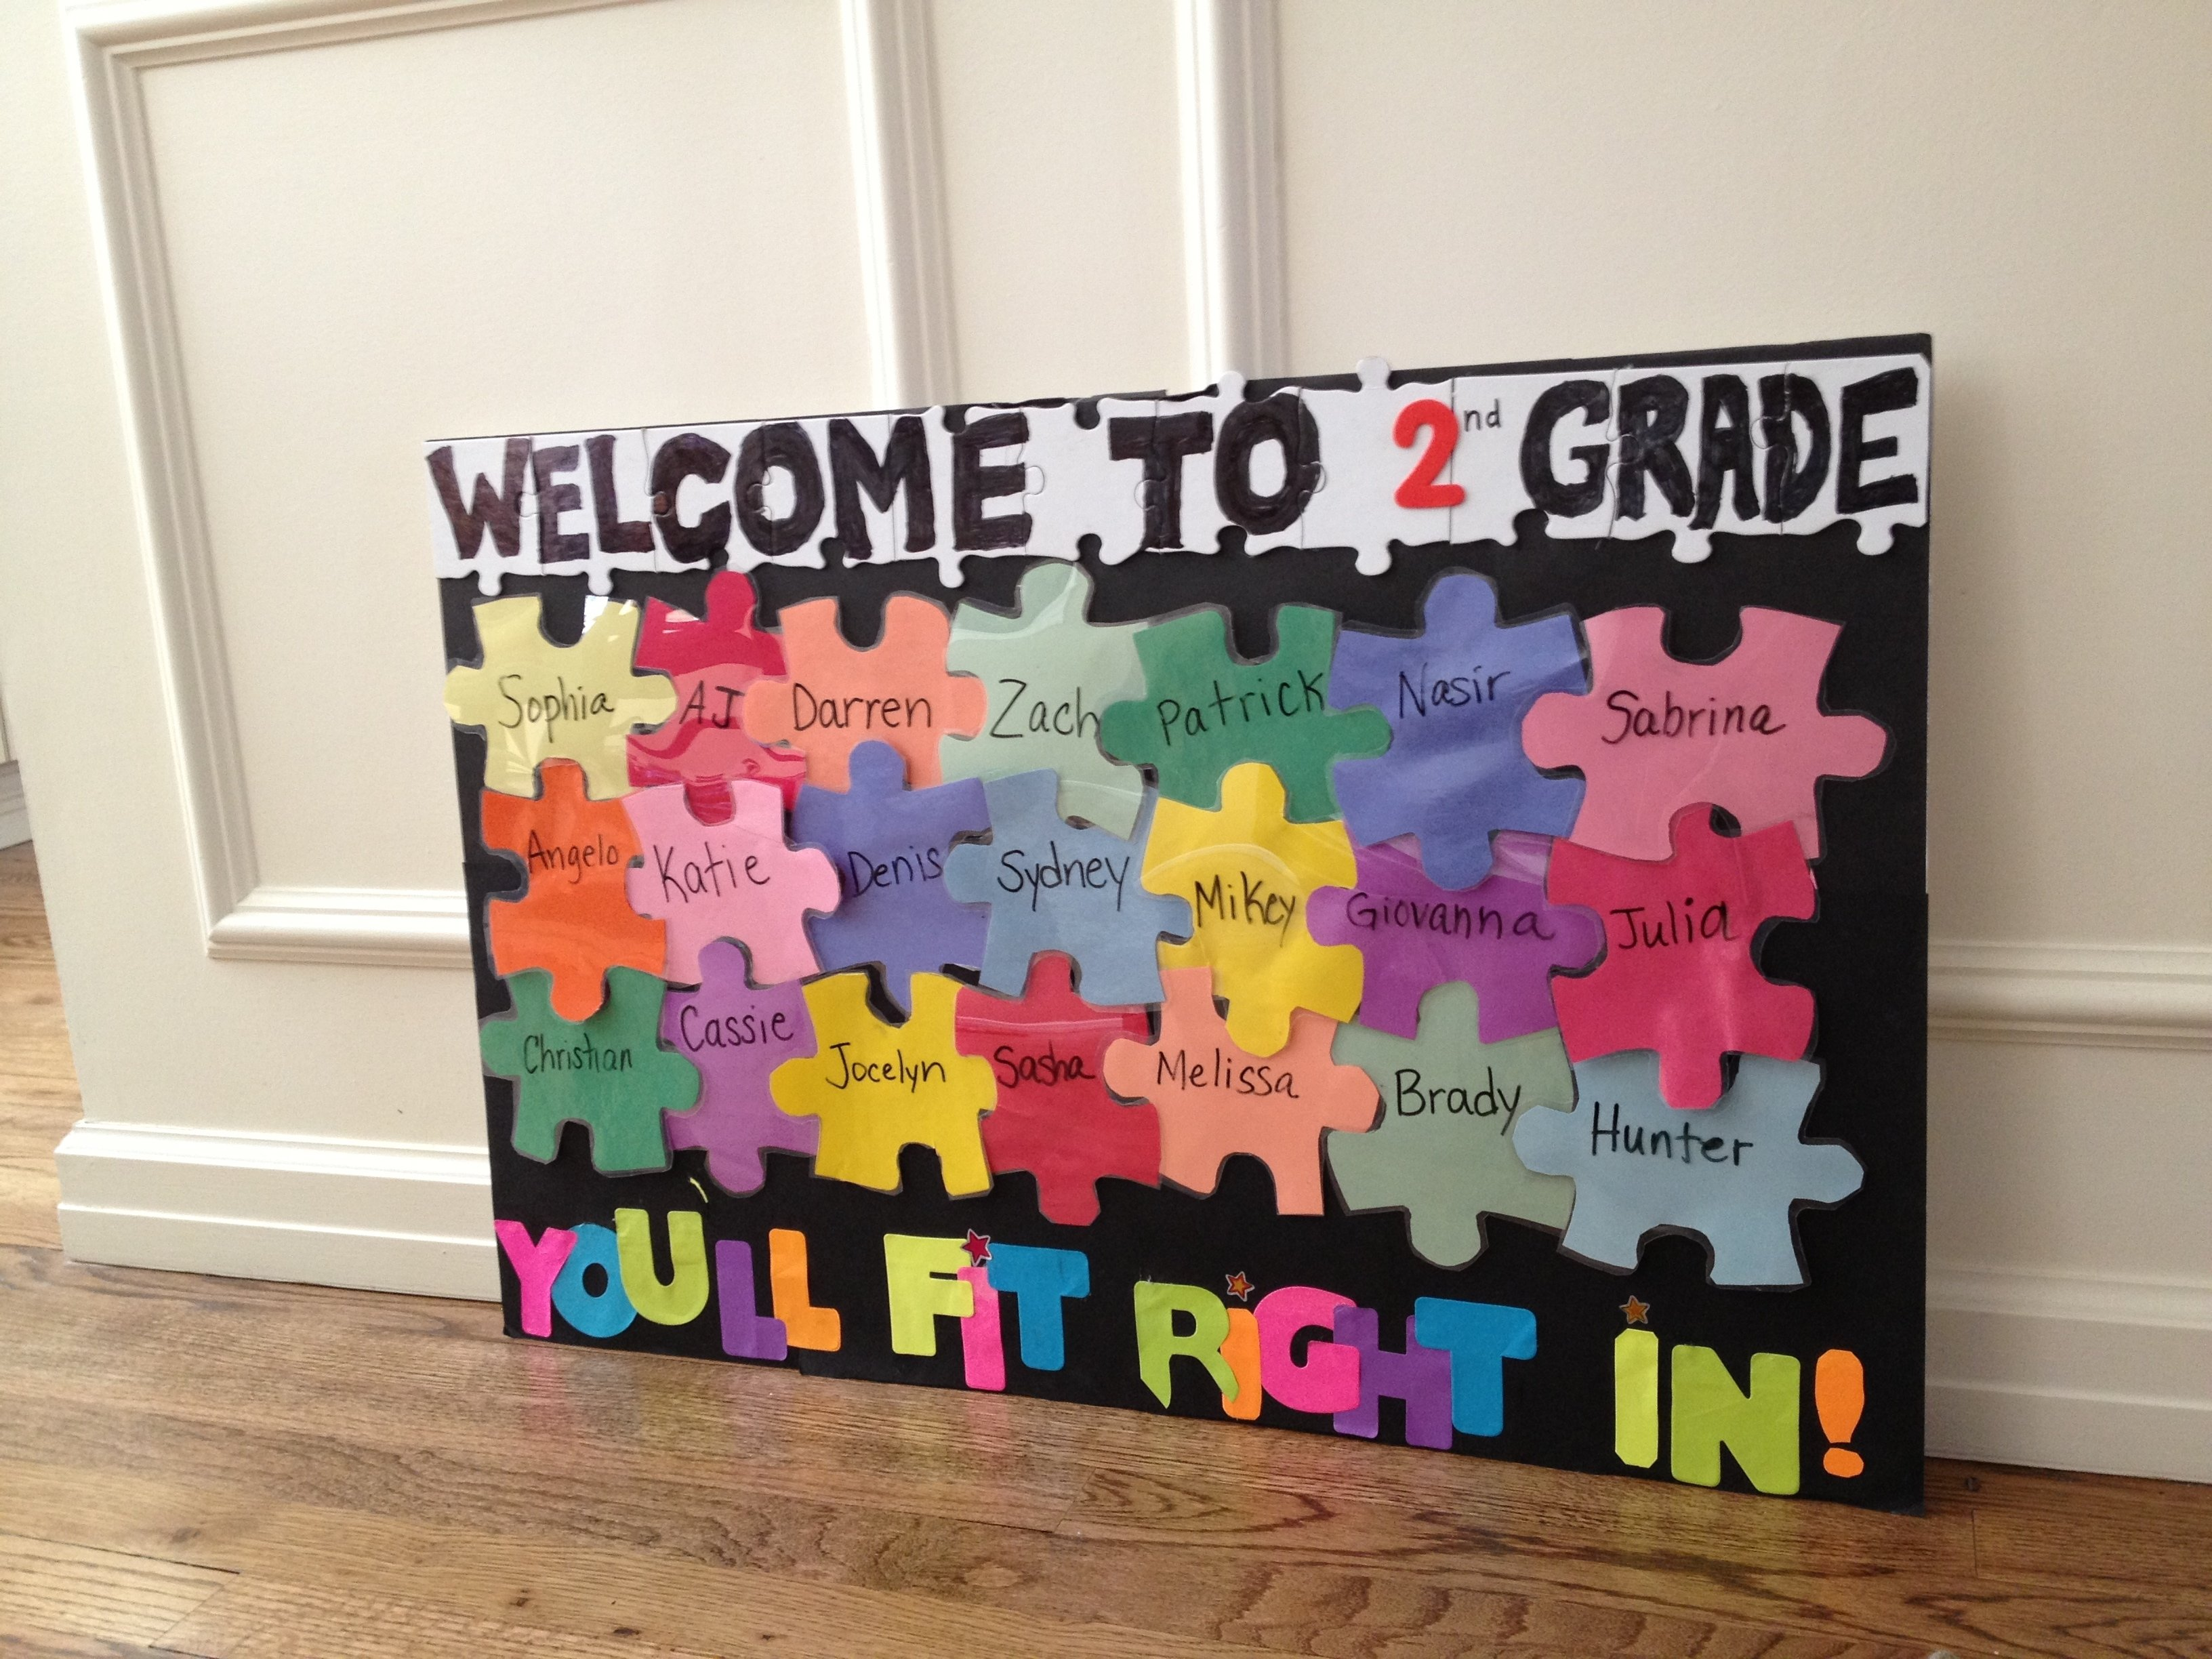 10 Stunning Welcome Back To School Bulletin Board Ideas second grade welcome back to school bulletin board ideas bing